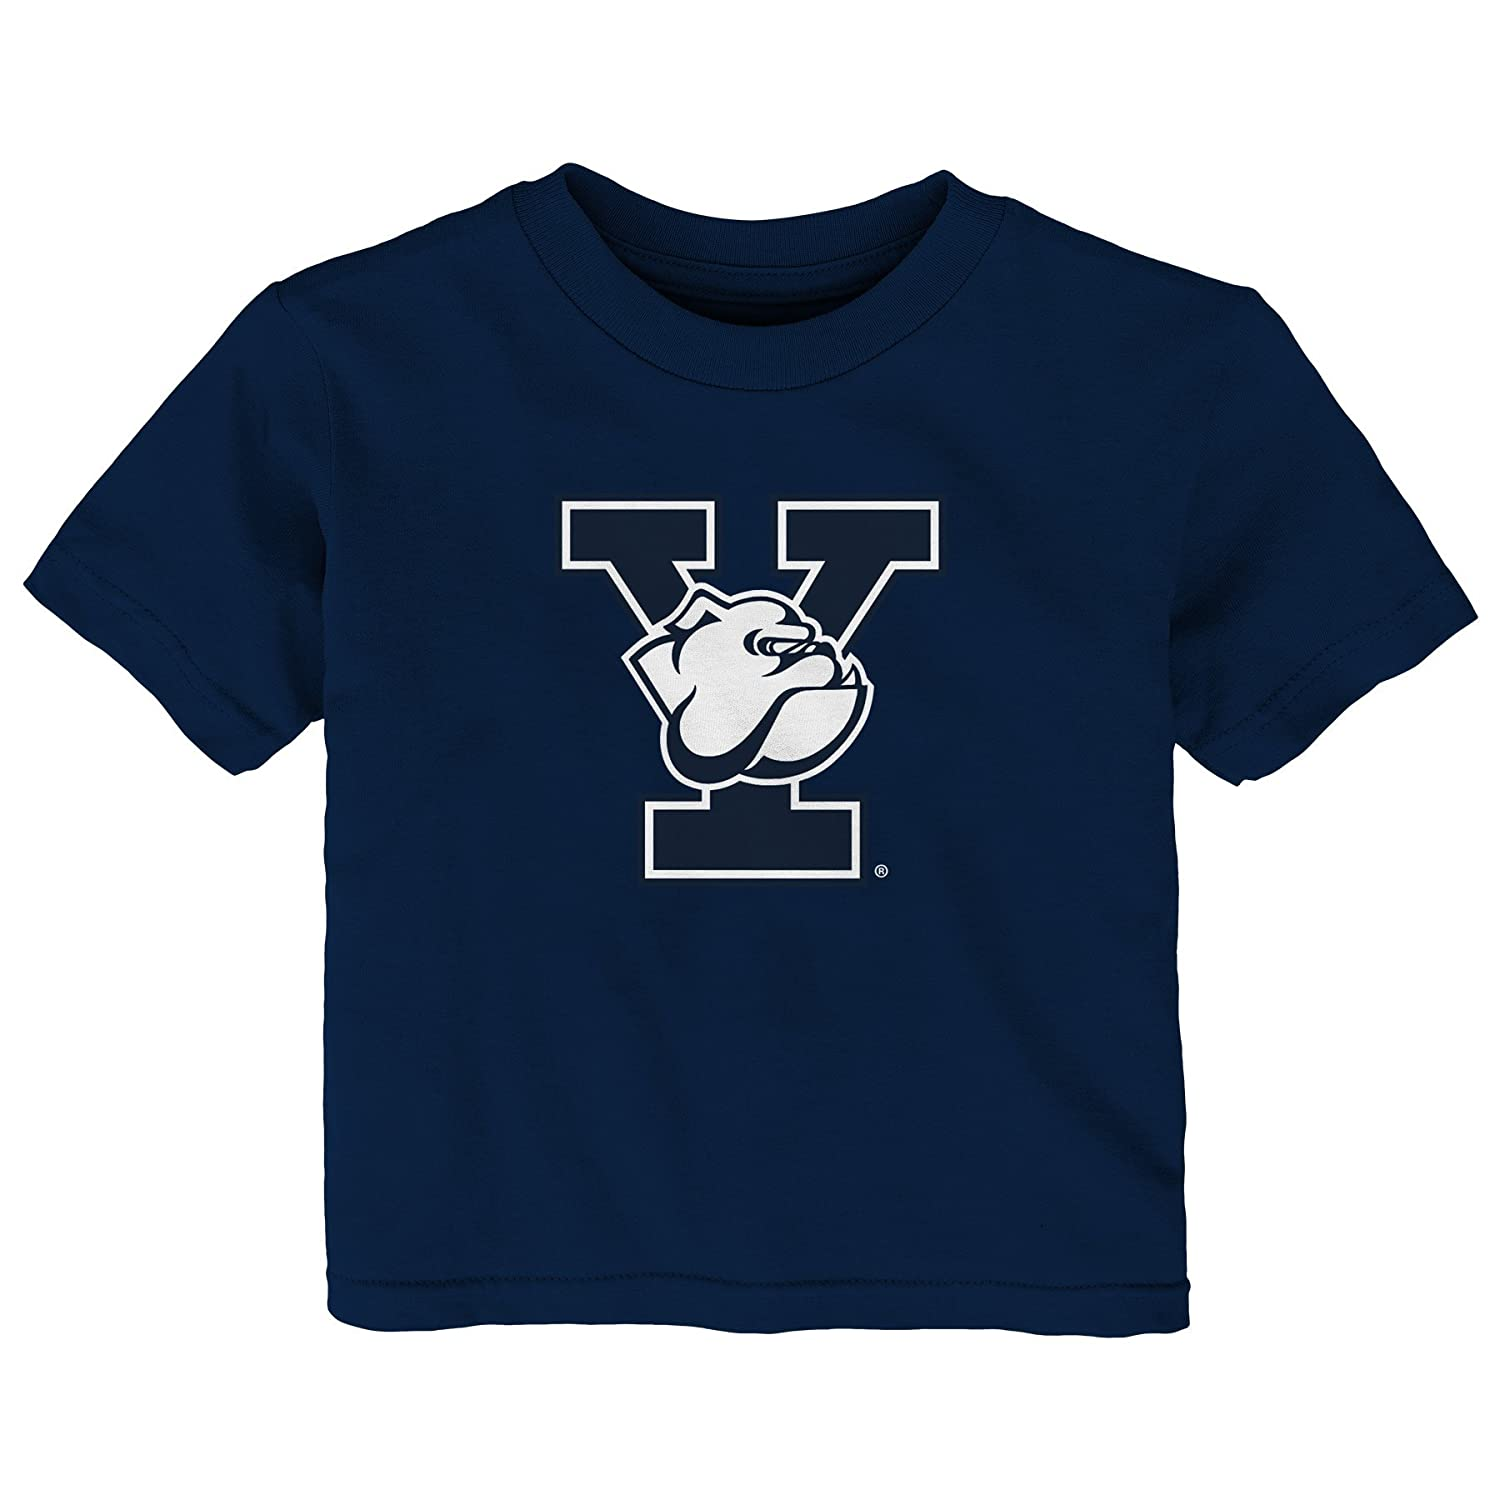 Outerstuff NCAA Yale Bulldogs Infant Primary Logo Short Sleeve Tee 24 Months Dark Navy